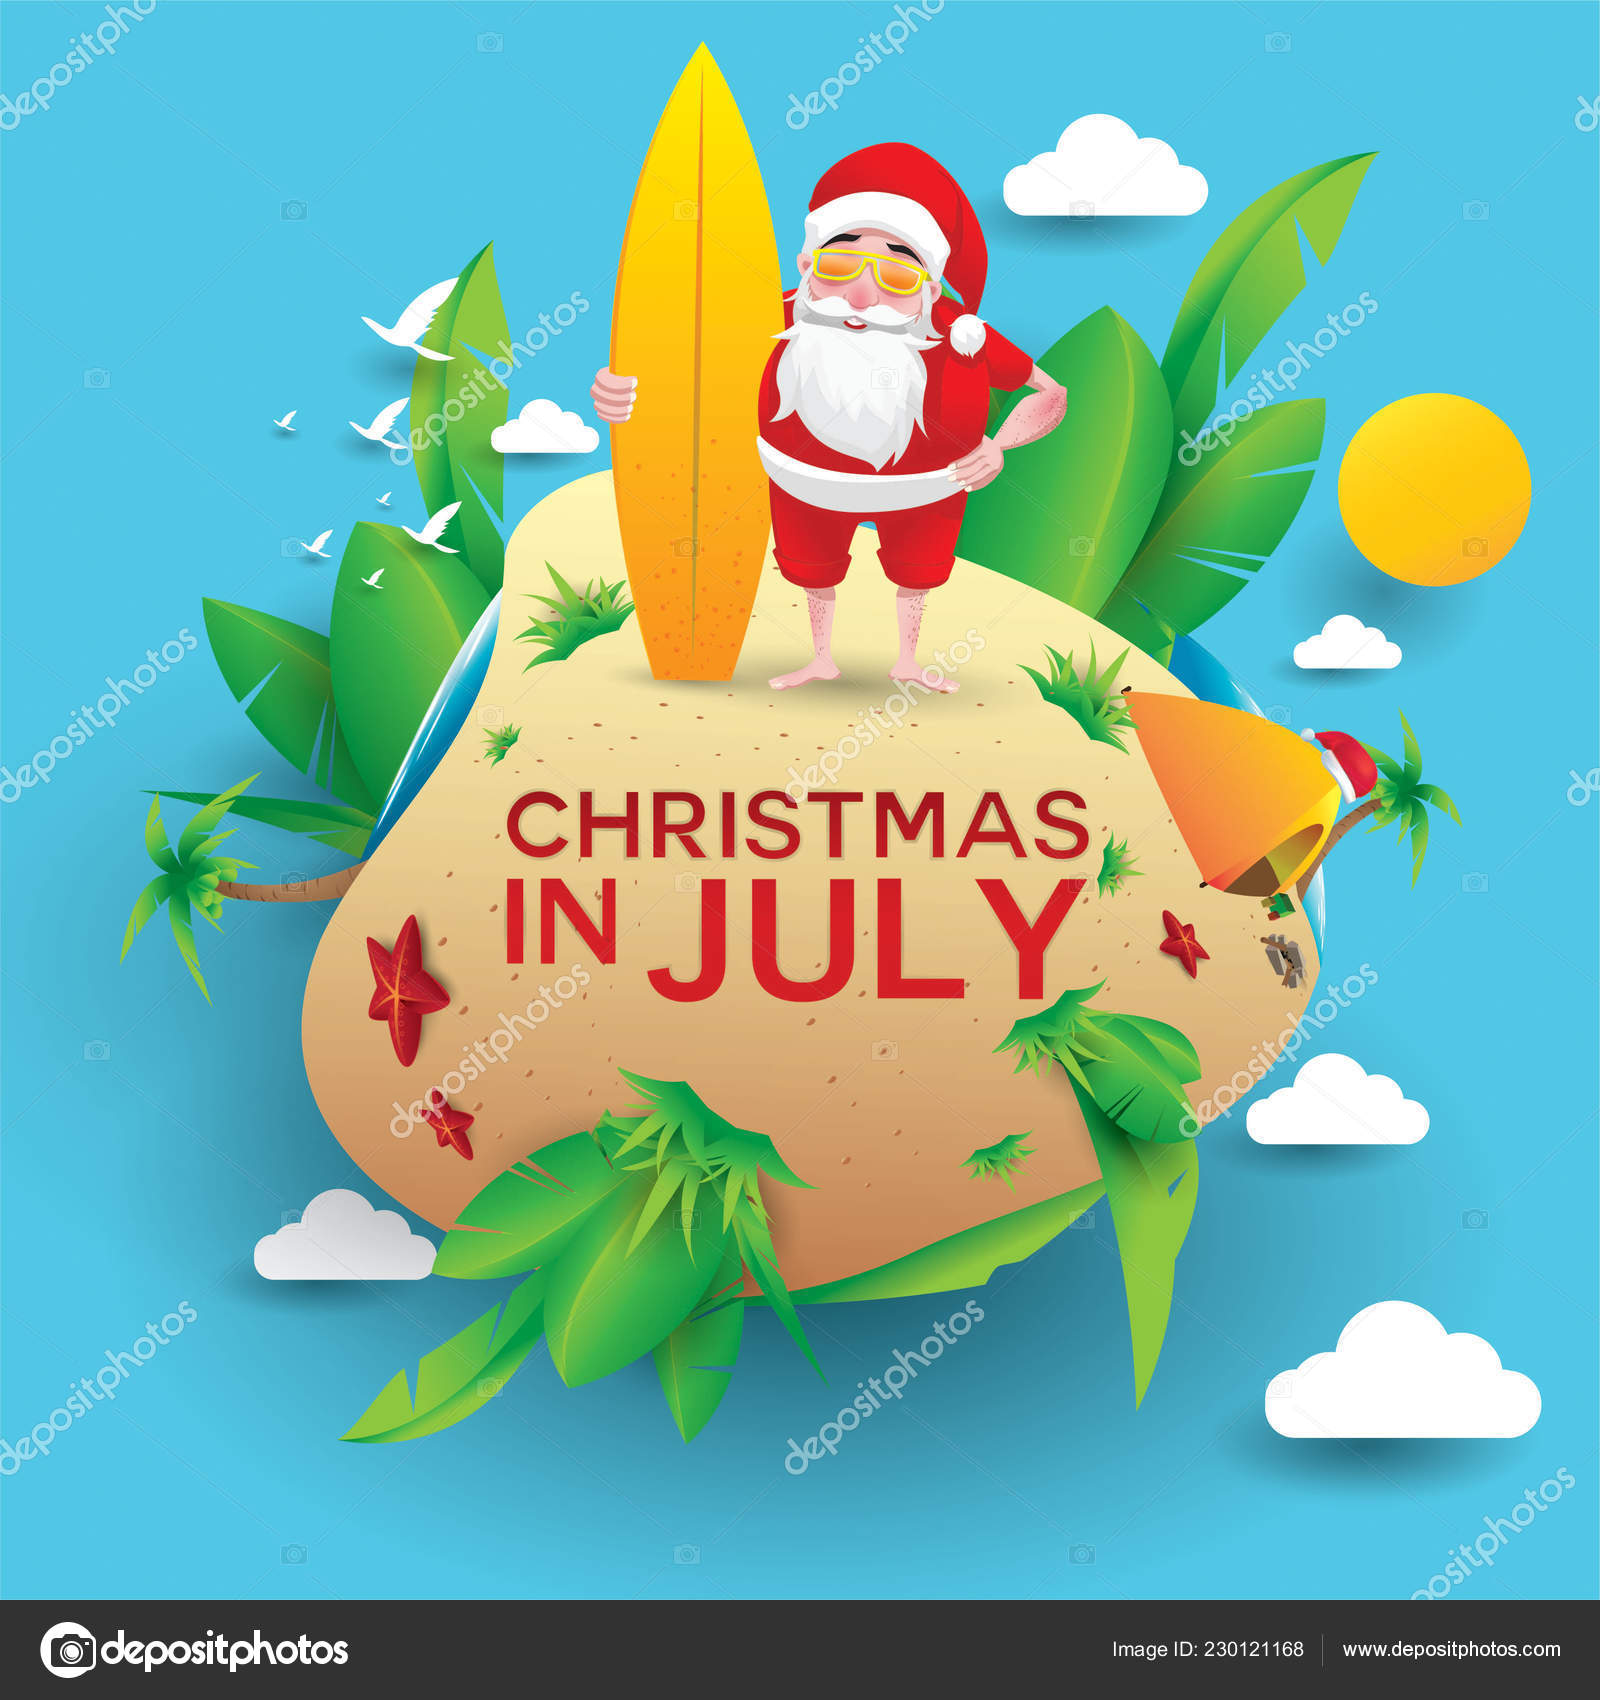 Christmas In August Poster.Christmas June July August Poster Marketing Advertising